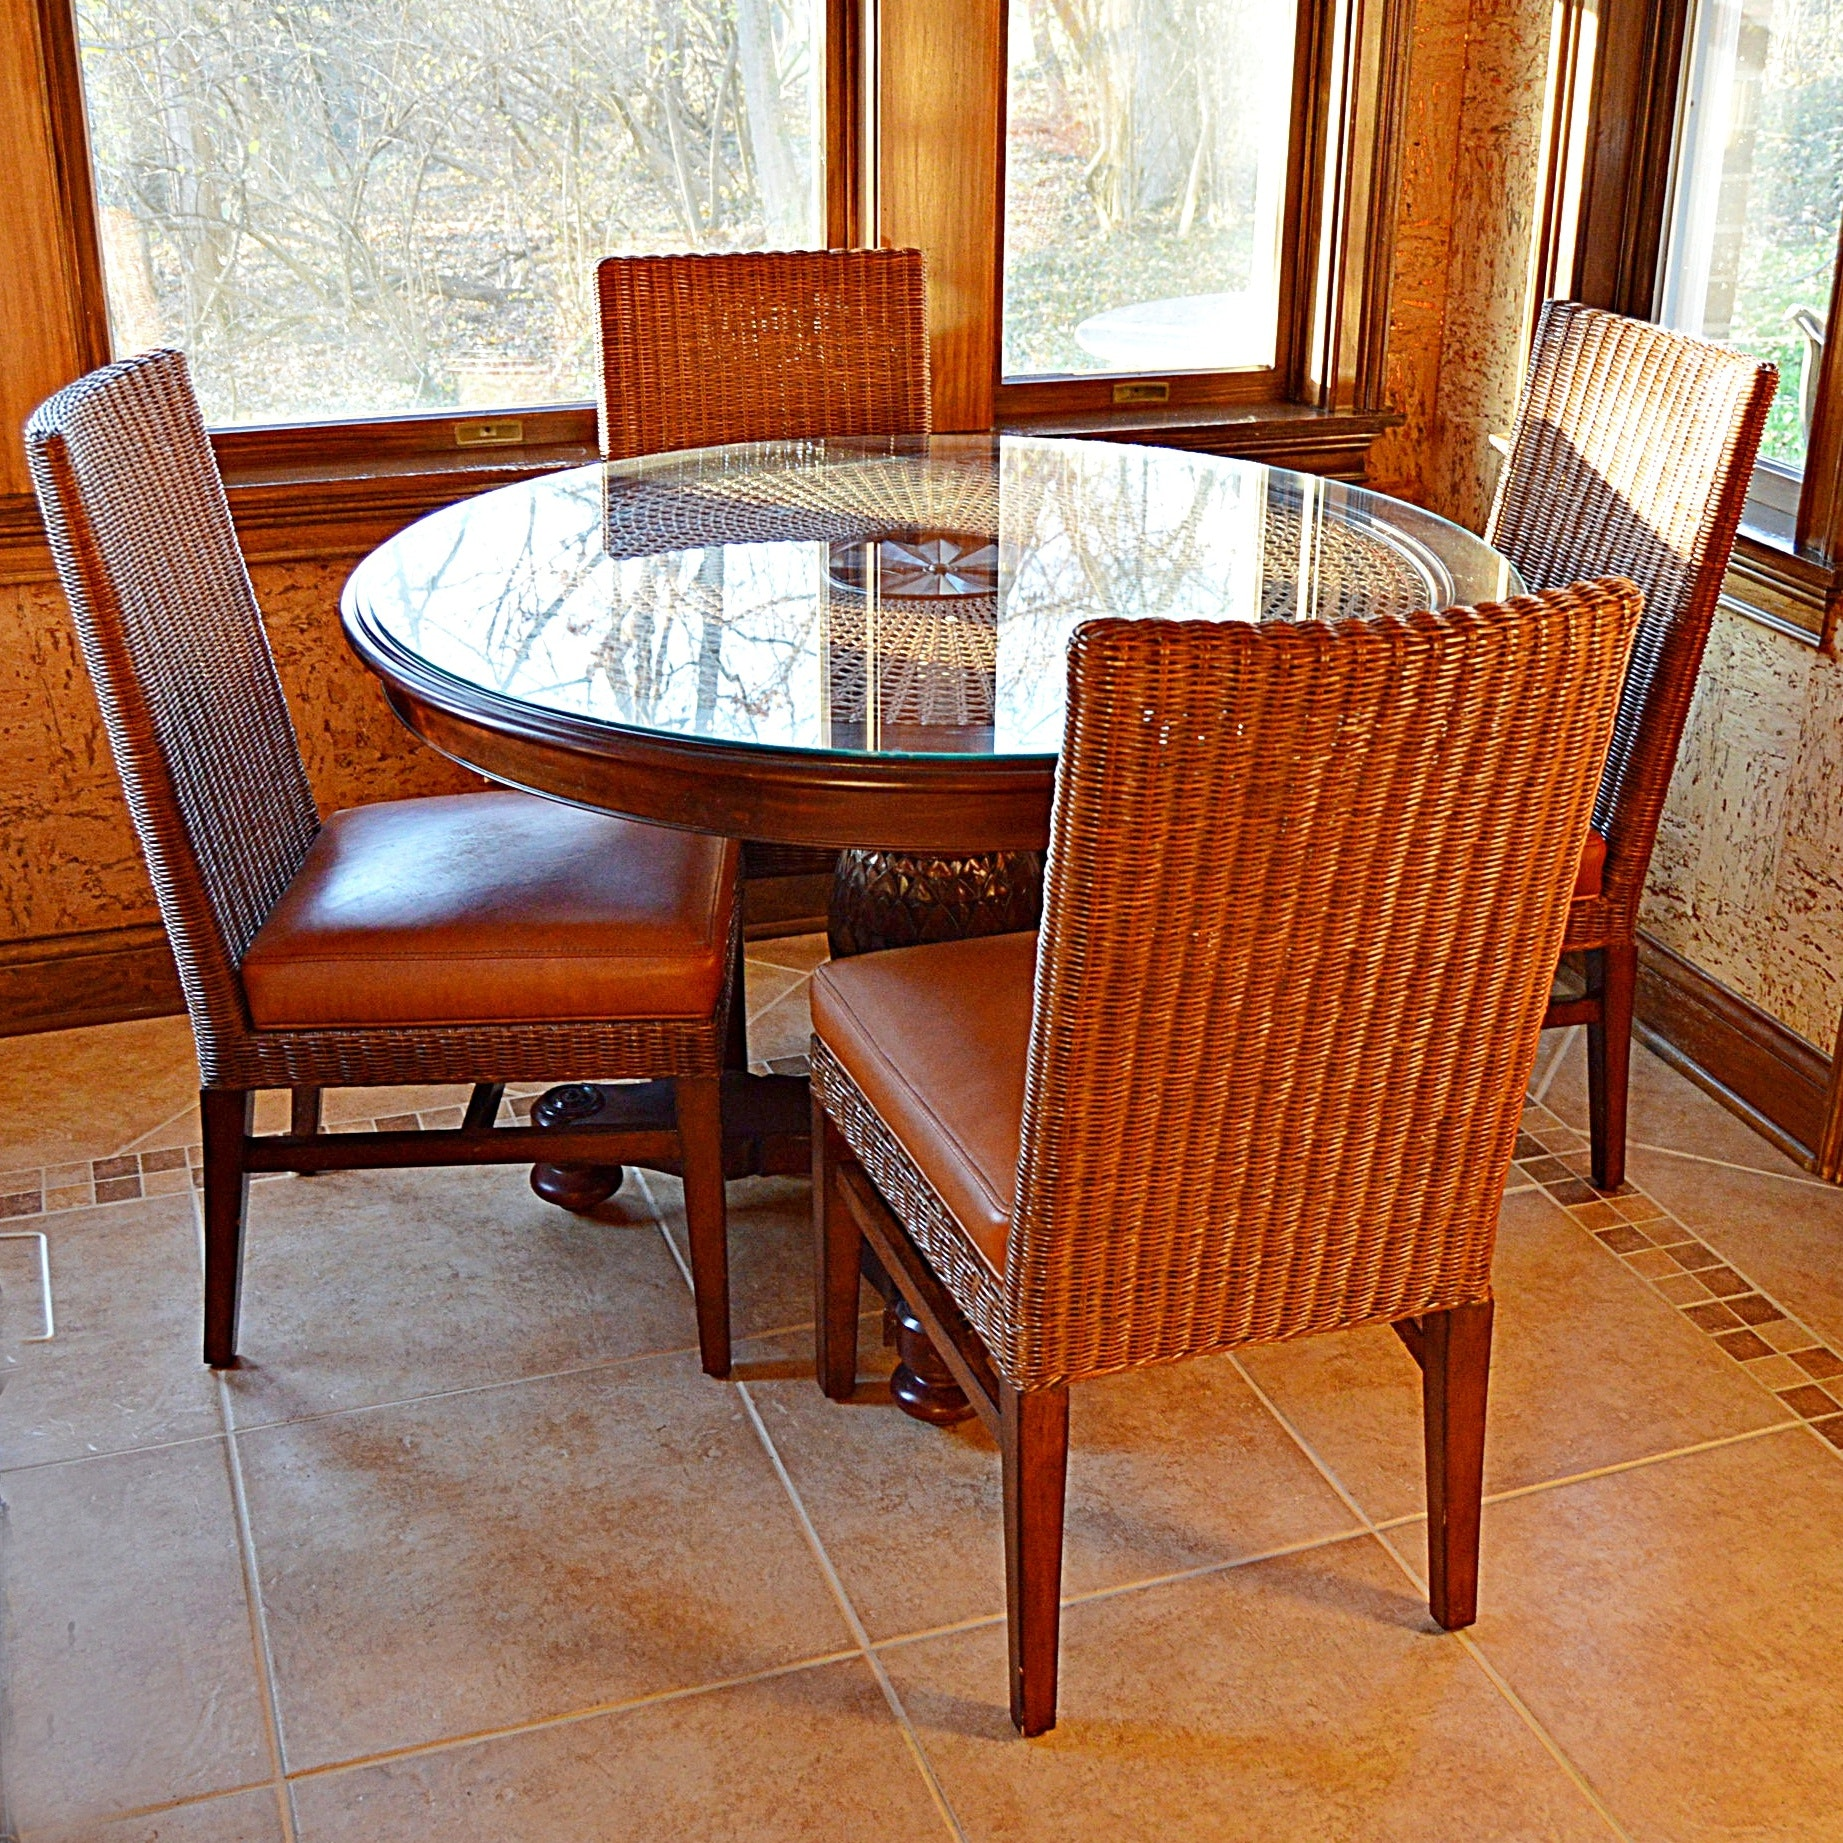 Ethan Allen Wicker and Wood Dining Set with Round Pedestal Table and Four Chairs